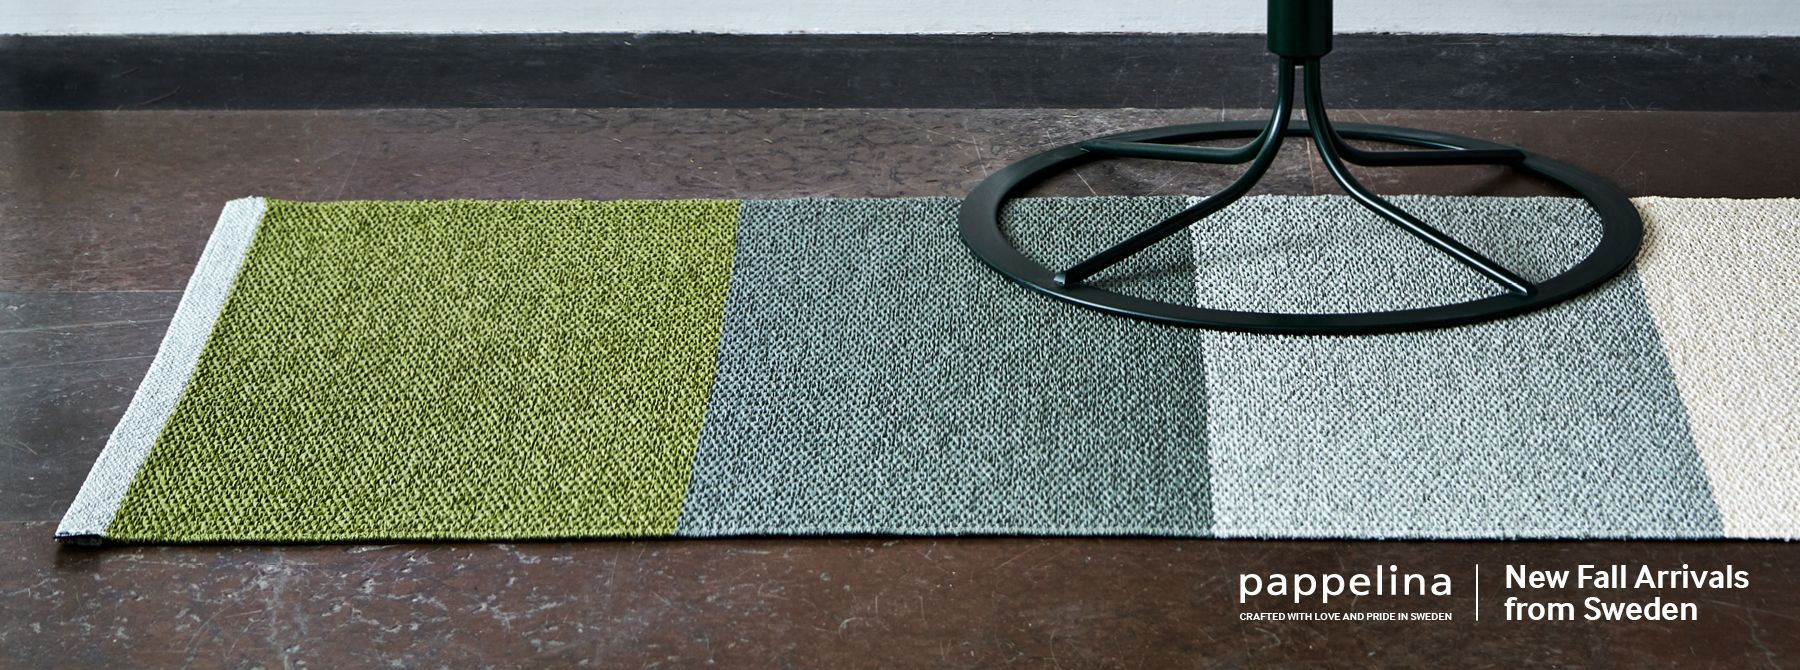 Pappelina Plastic Rugs - Made in Sweden